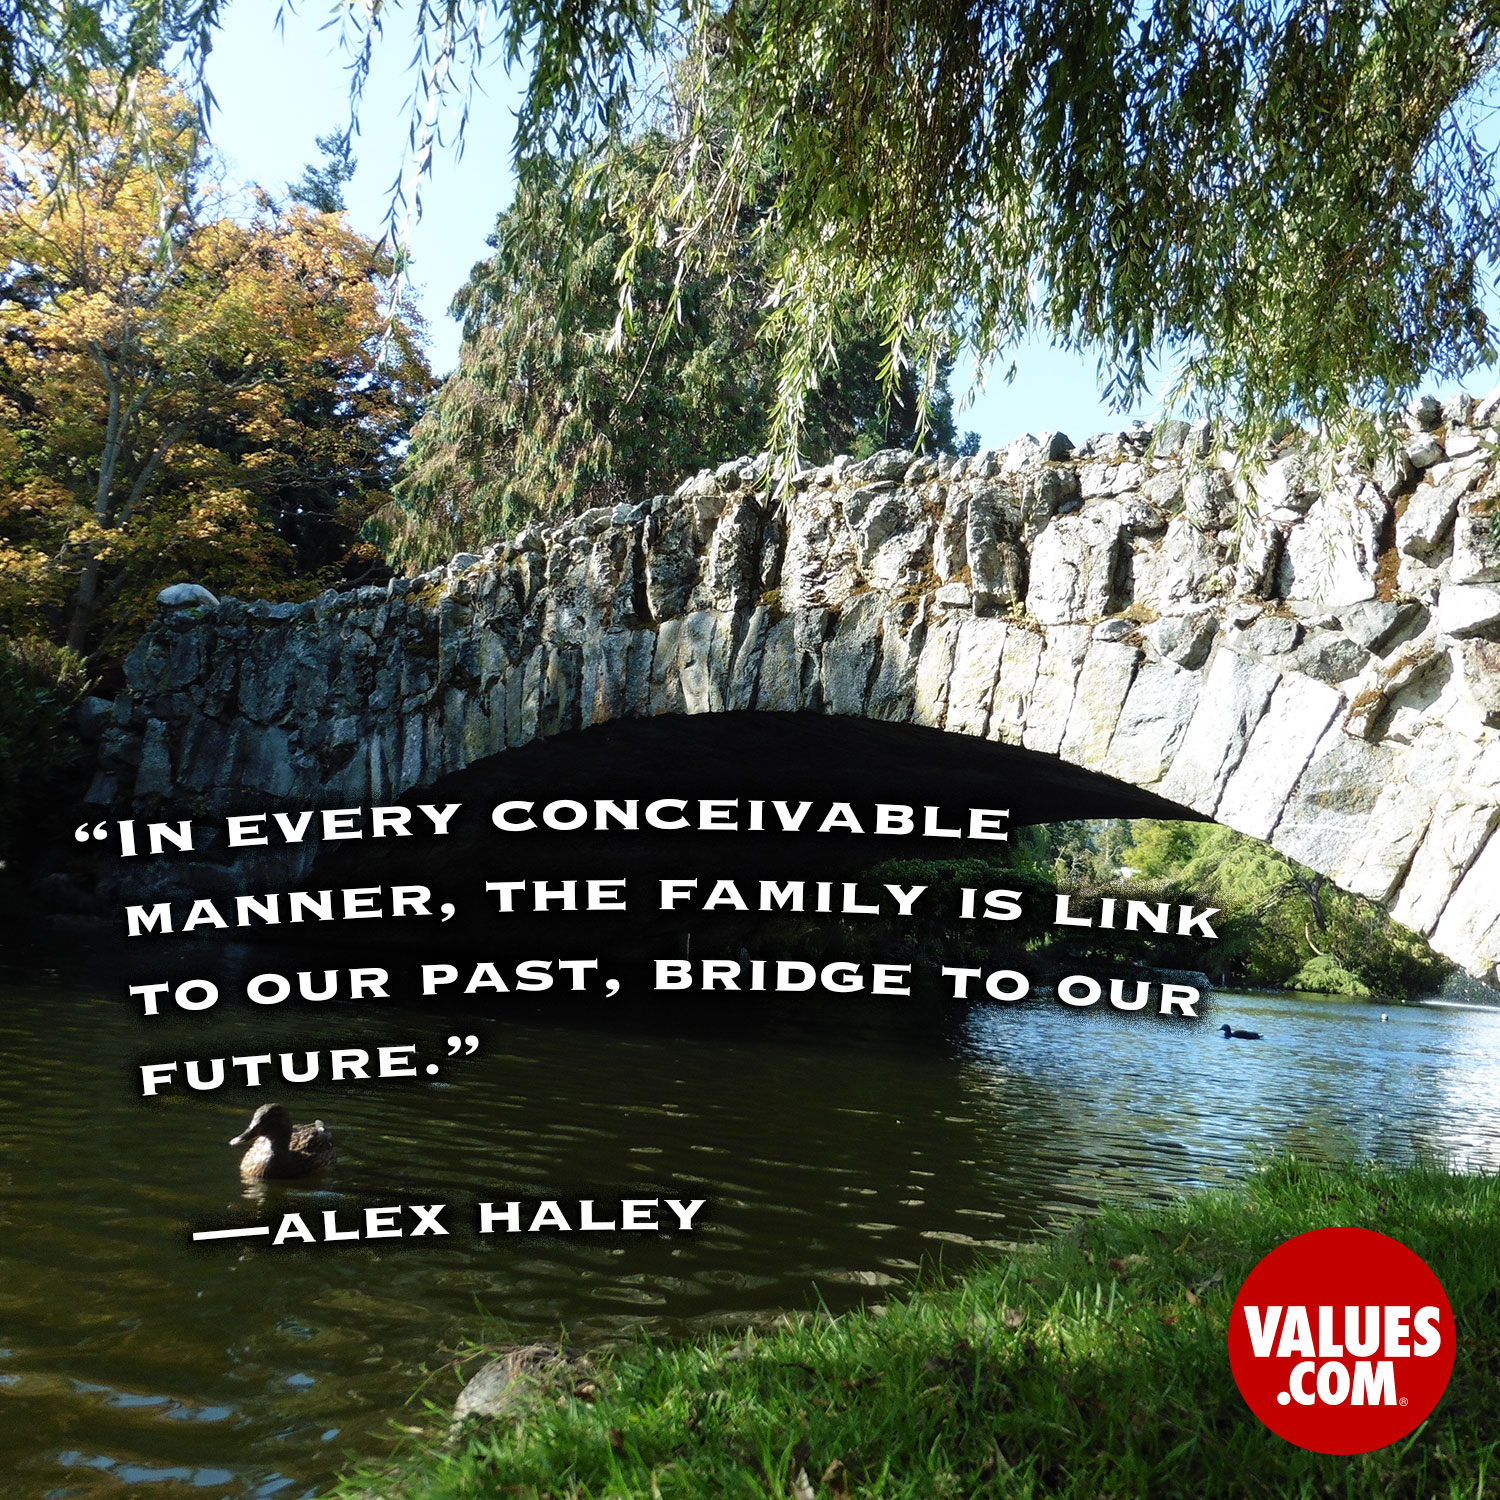 In every conceivable manner, the family is link to our past, bridge to our future.  —Alex Haley